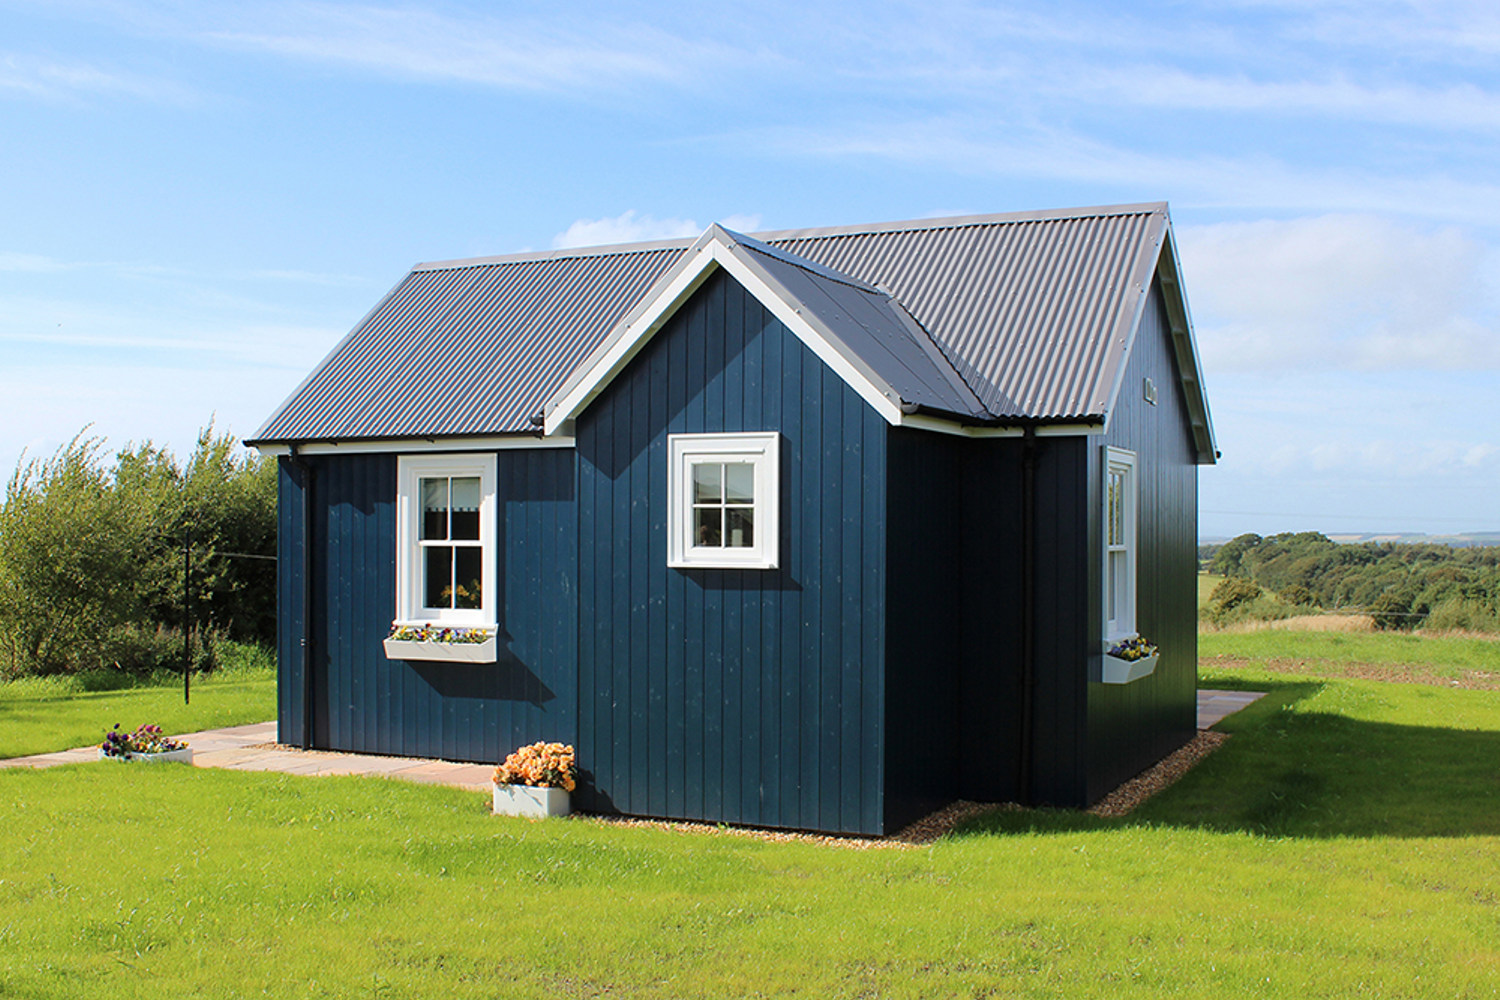 Gallery the wee house company small house bliss for House company